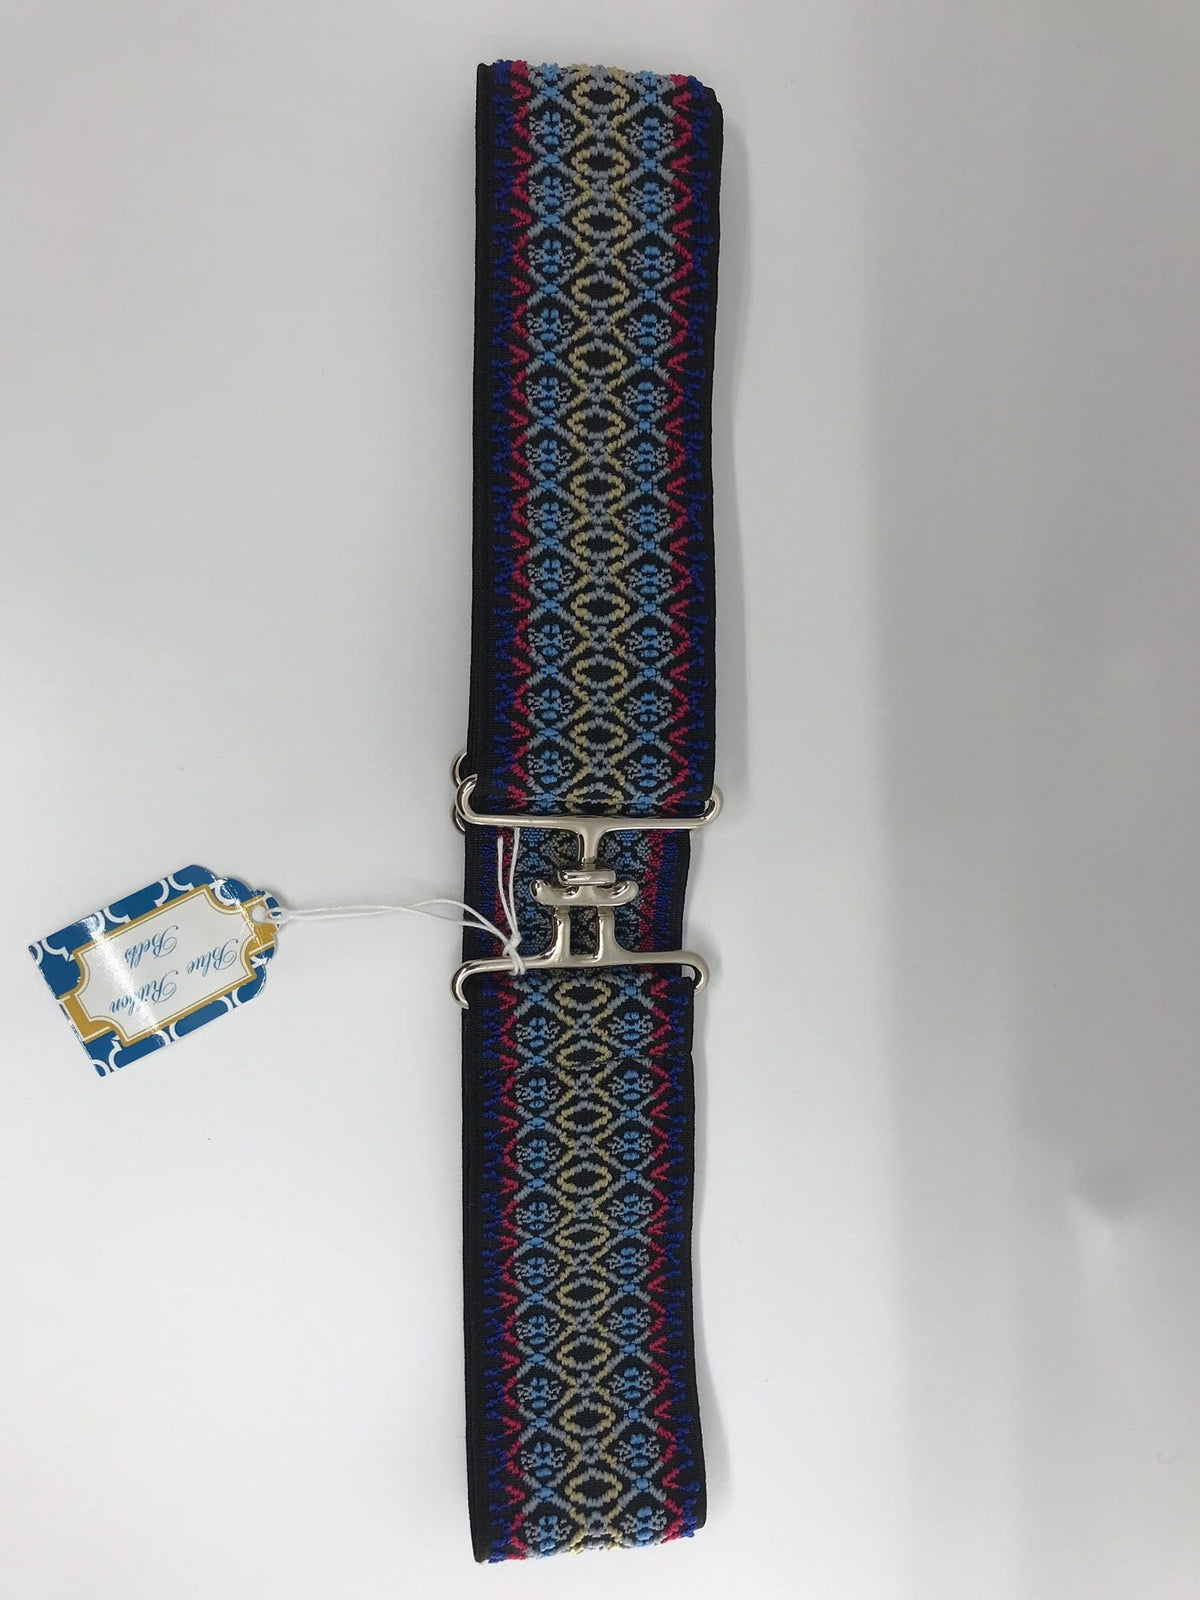 Blue Ribbon Belts Belt Navy/Rose/Light Blue Blue Ribbon Belts - 2 Inch equestrian team apparel online tack store mobile tack store custom farm apparel custom show stable clothing equestrian lifestyle horse show clothing riding clothes horses equestrian tack store